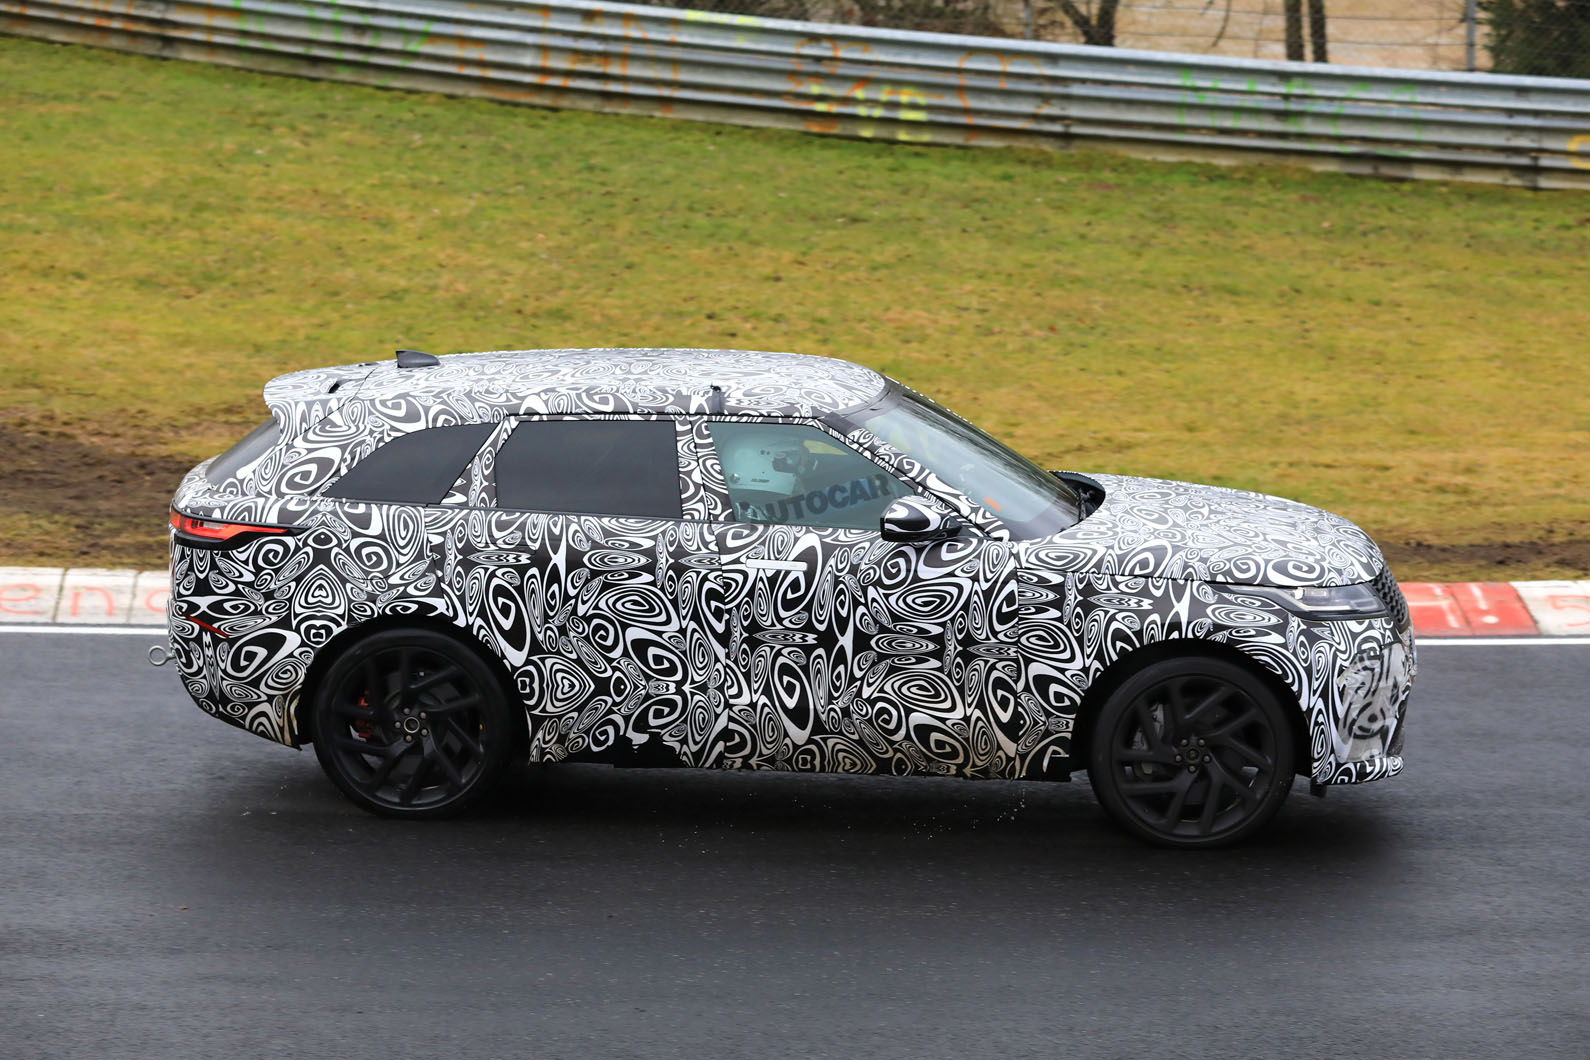 542bhp Velar SVR to be quickest Range Rover yet | Autocar